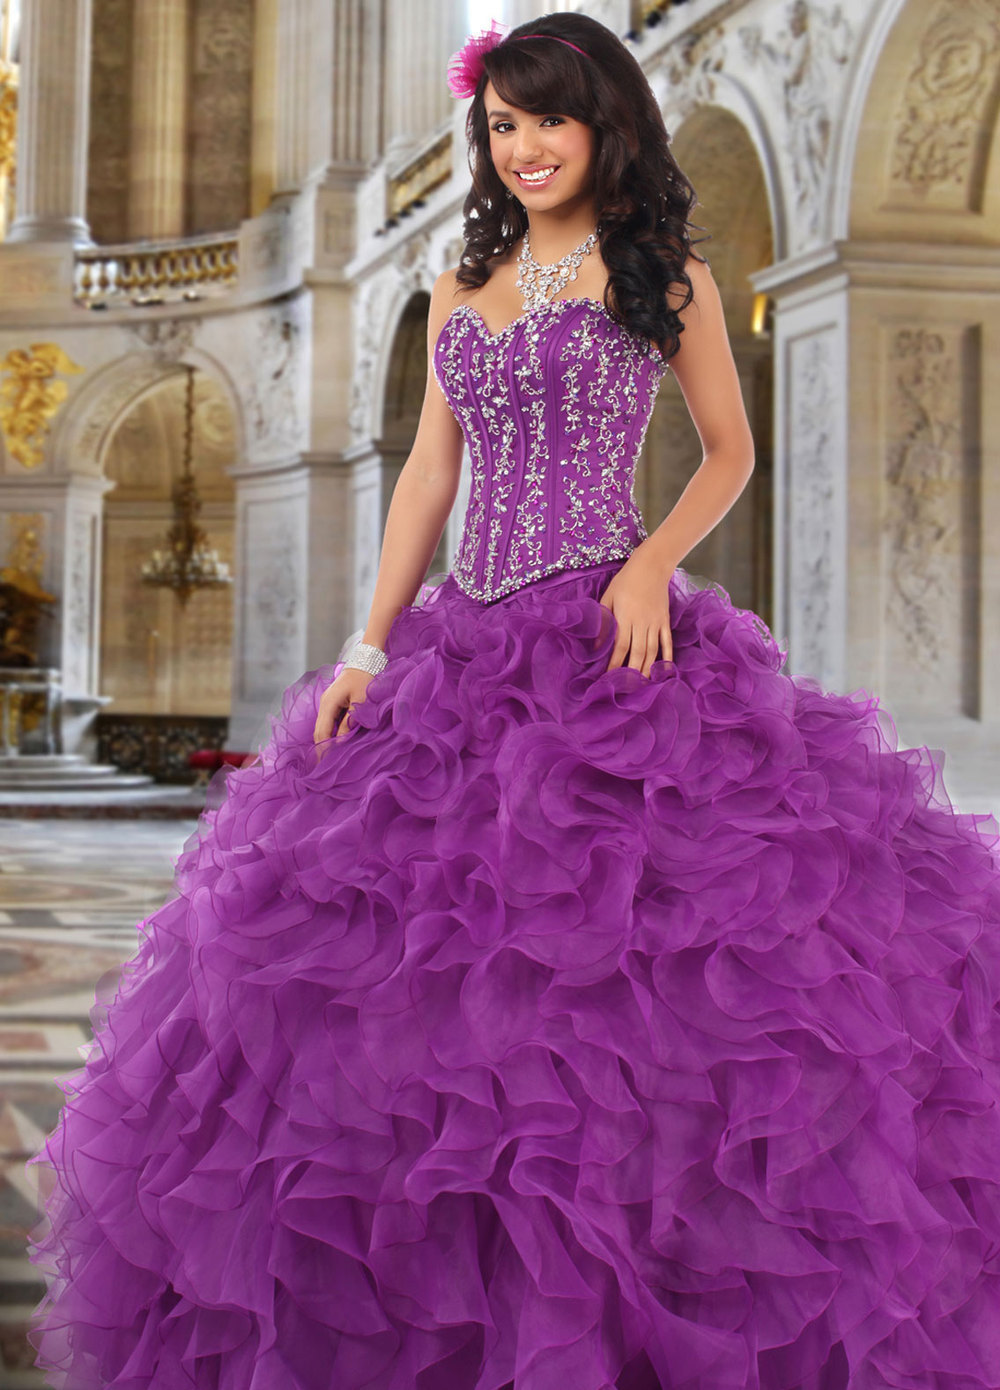 Puffy Gown Ball Sweetheart Organza Lace Beaded Quinceanera Dress Purple vestidos de 15 anos